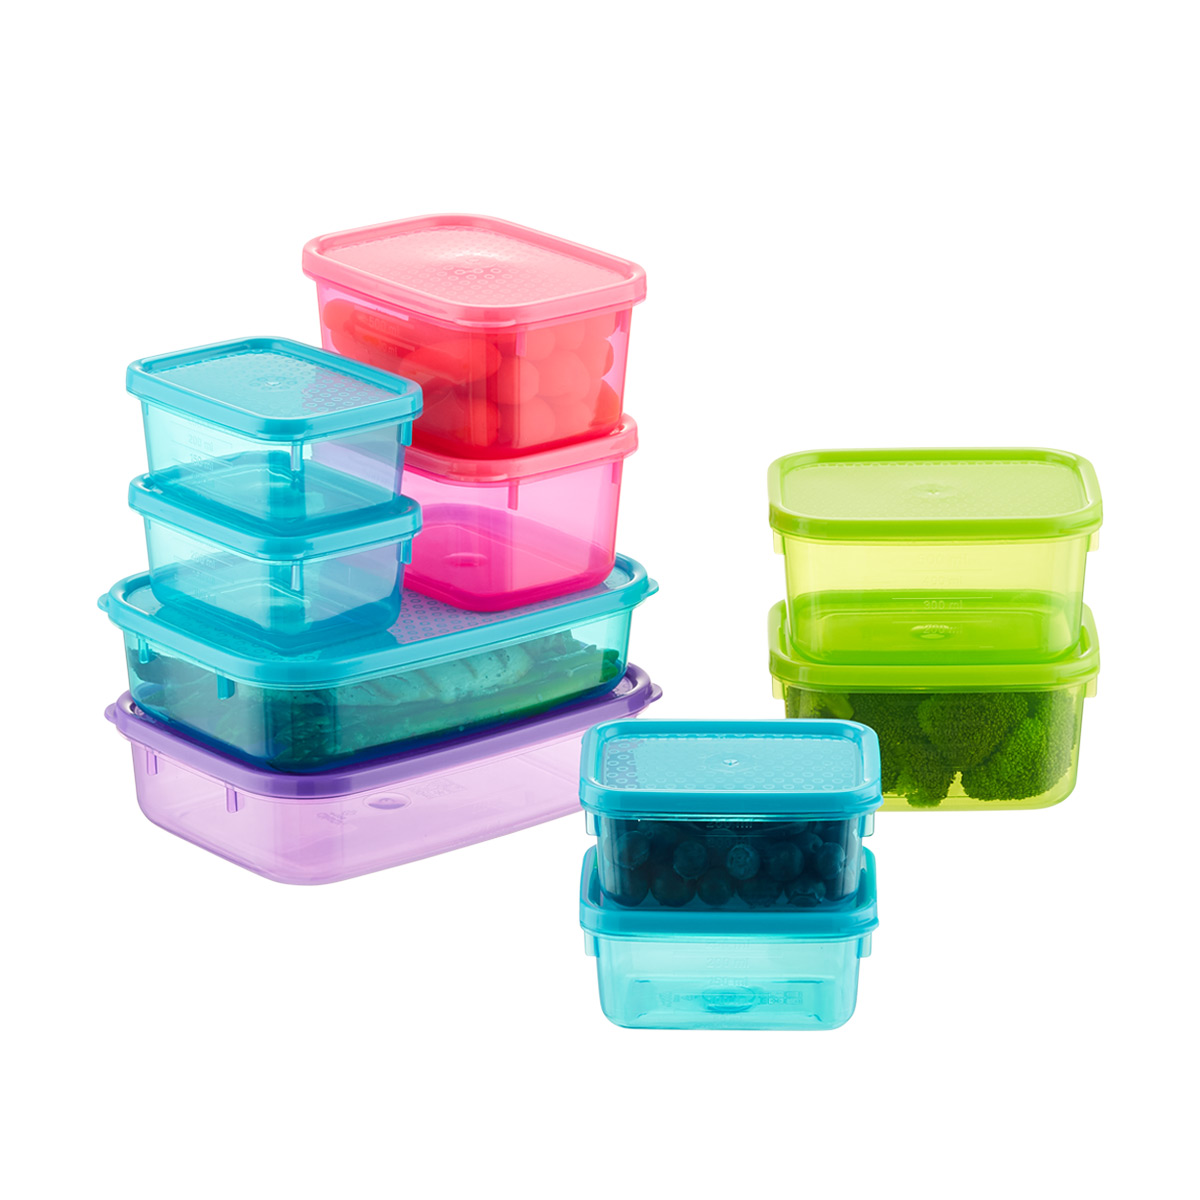 Tellfresh Jewel Food Storage Set of 10